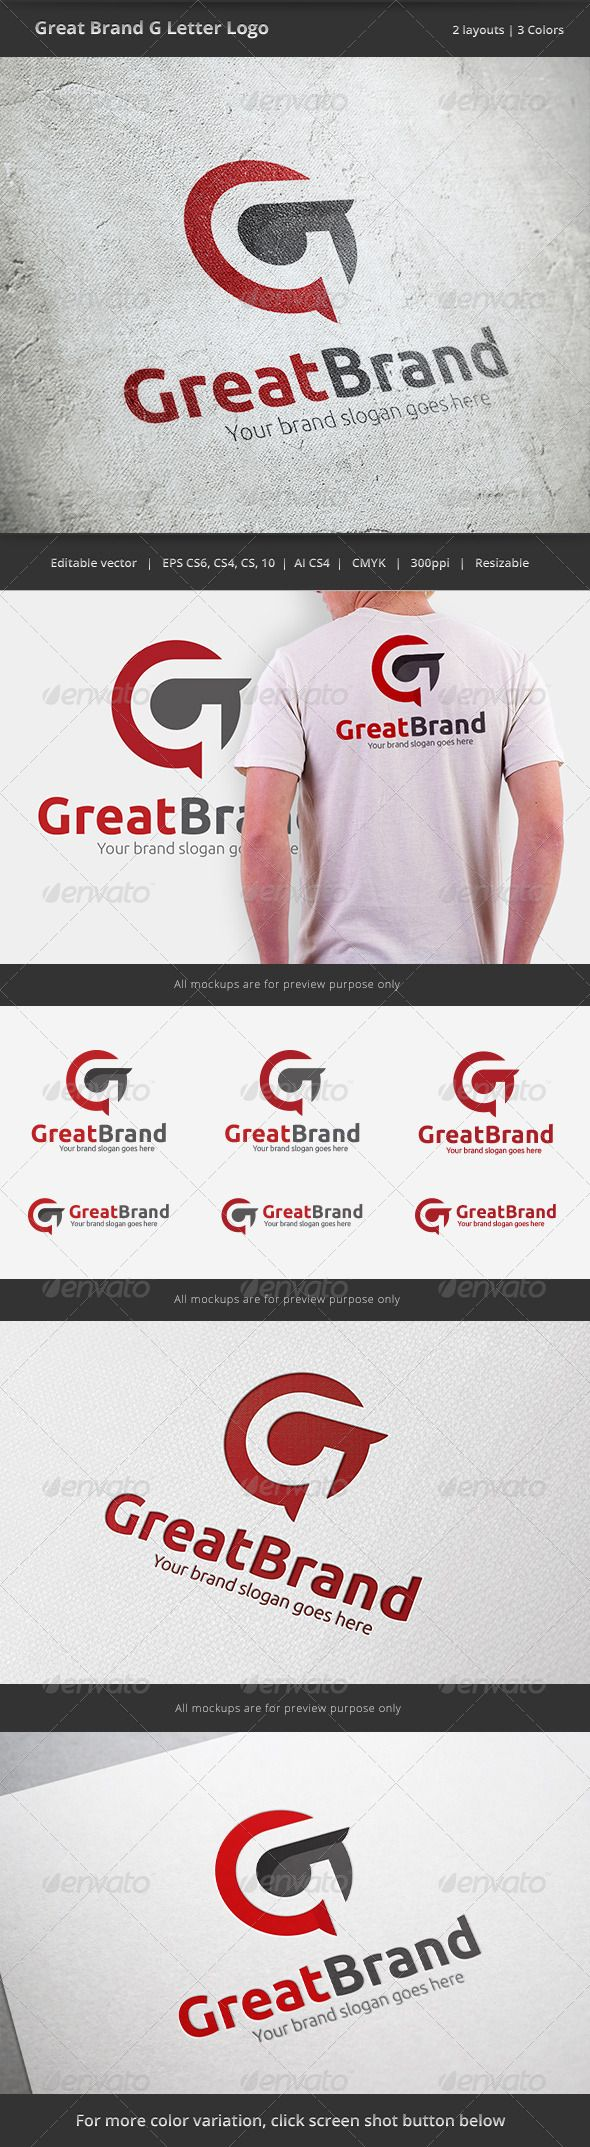 Great Brand Letter G - Logo Design Template Vector #logotype Download it here: http://graphicriver.net/item/great-brand-letter-g-logo/6430817?s_rank=47?ref=nesto